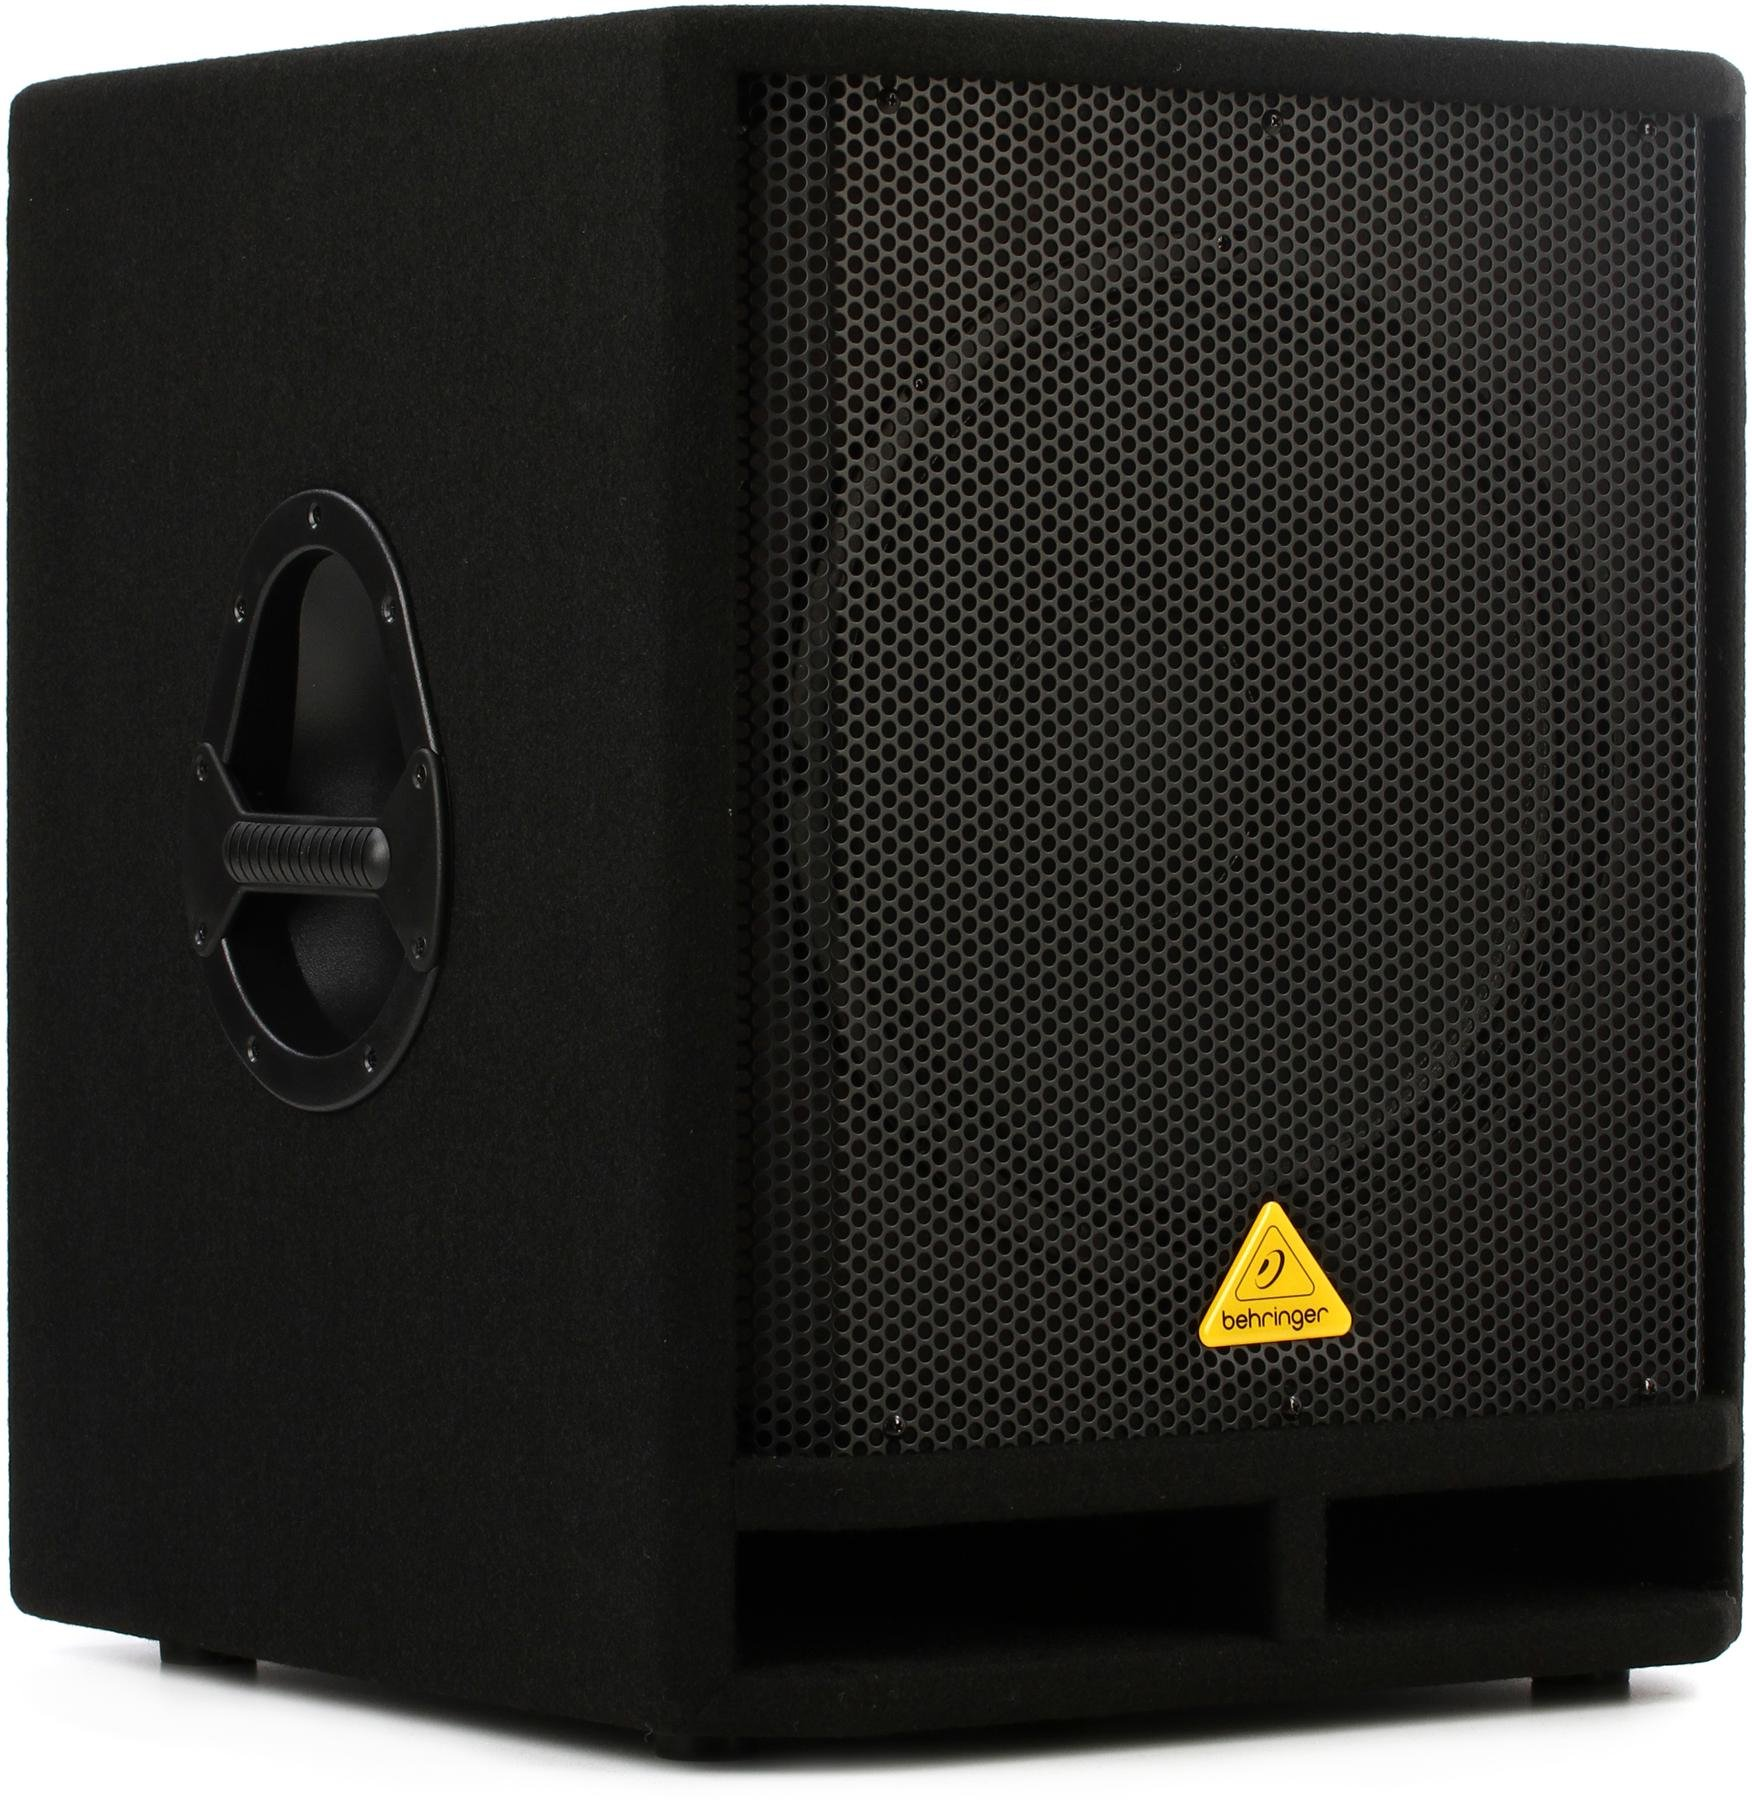 Behringer Vq1500d 500w 15 Powered Subwoofer Sweetwater Tone Control Include Out Image 1